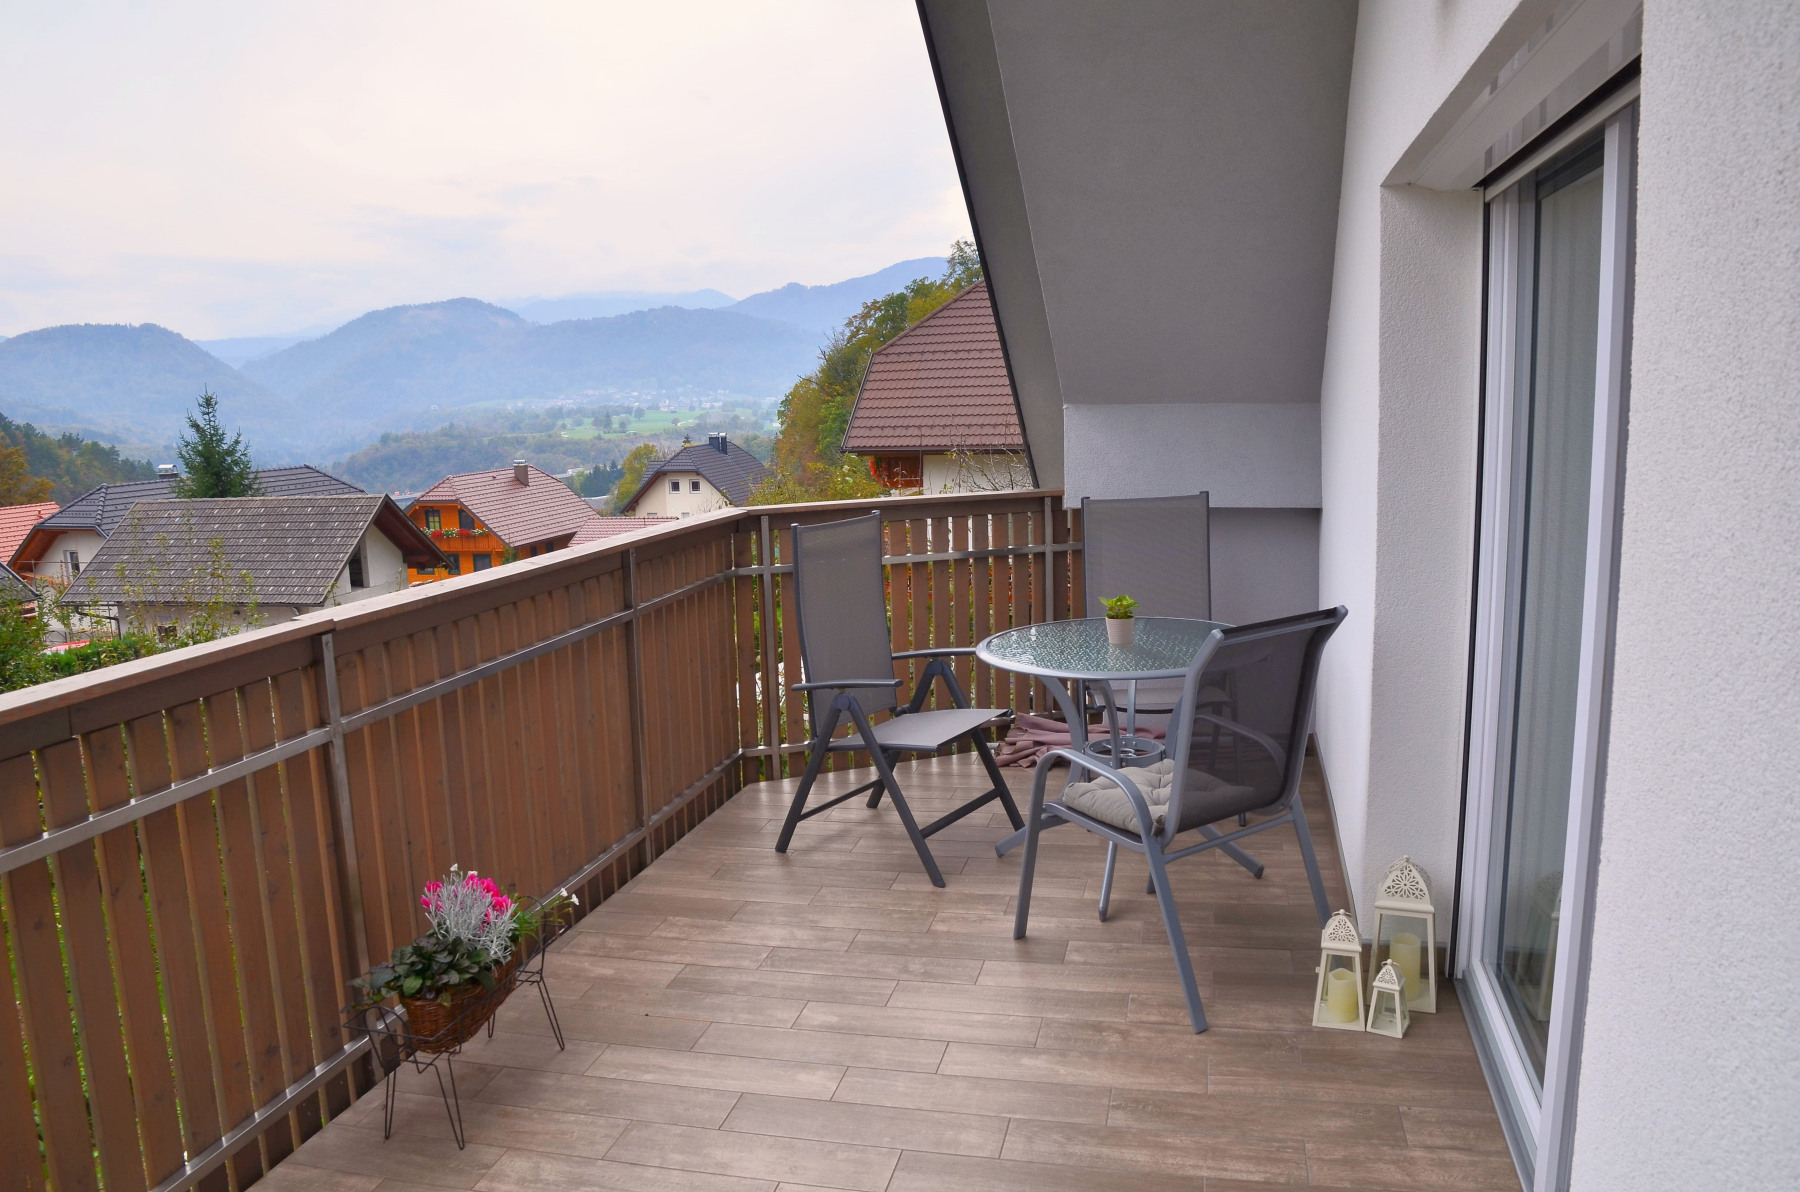 photos of the modern apartment with balcony